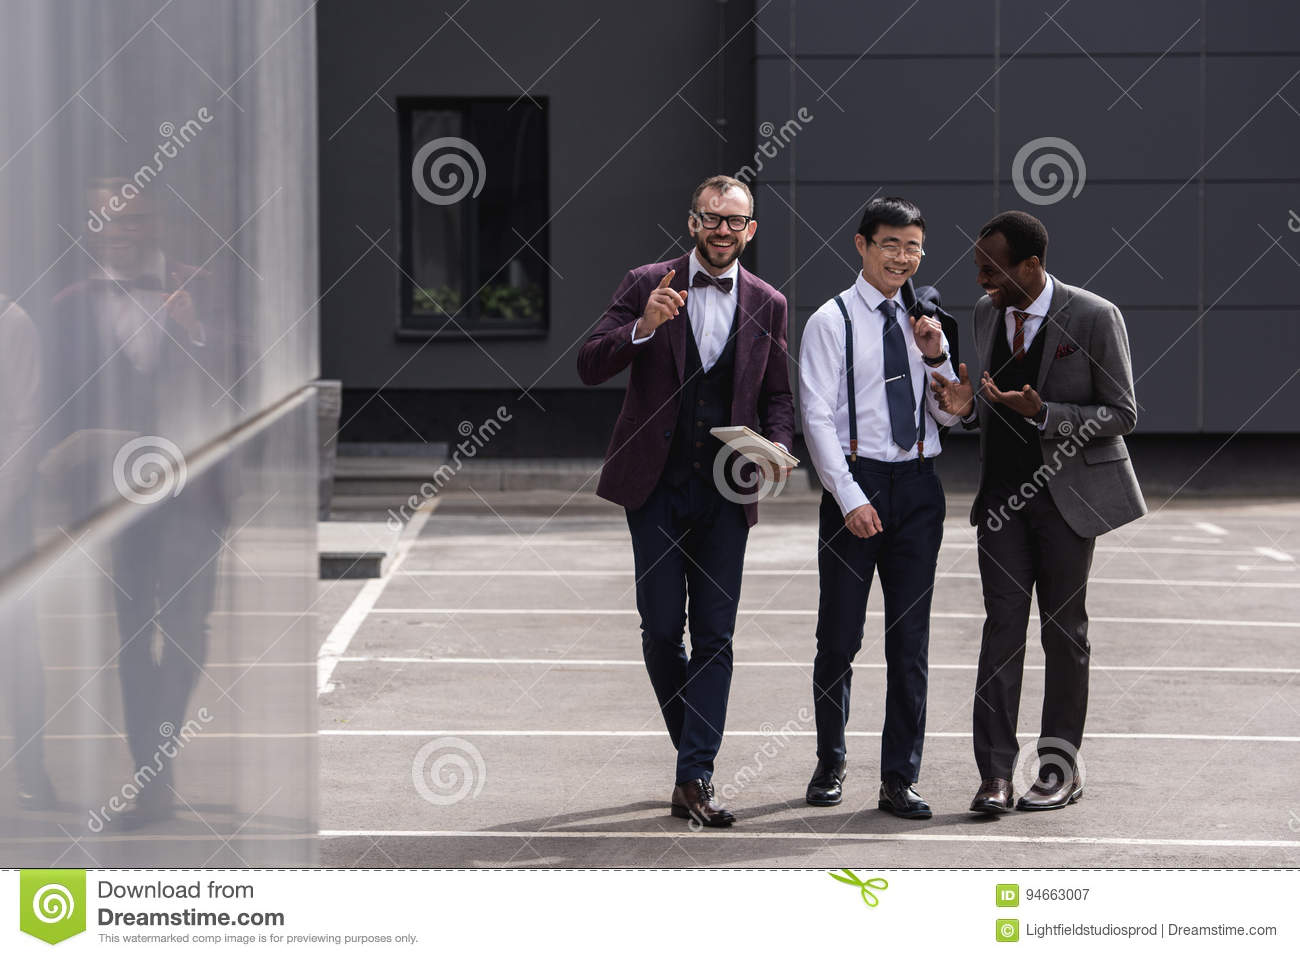 Multicultural business team walking on street near modern office building